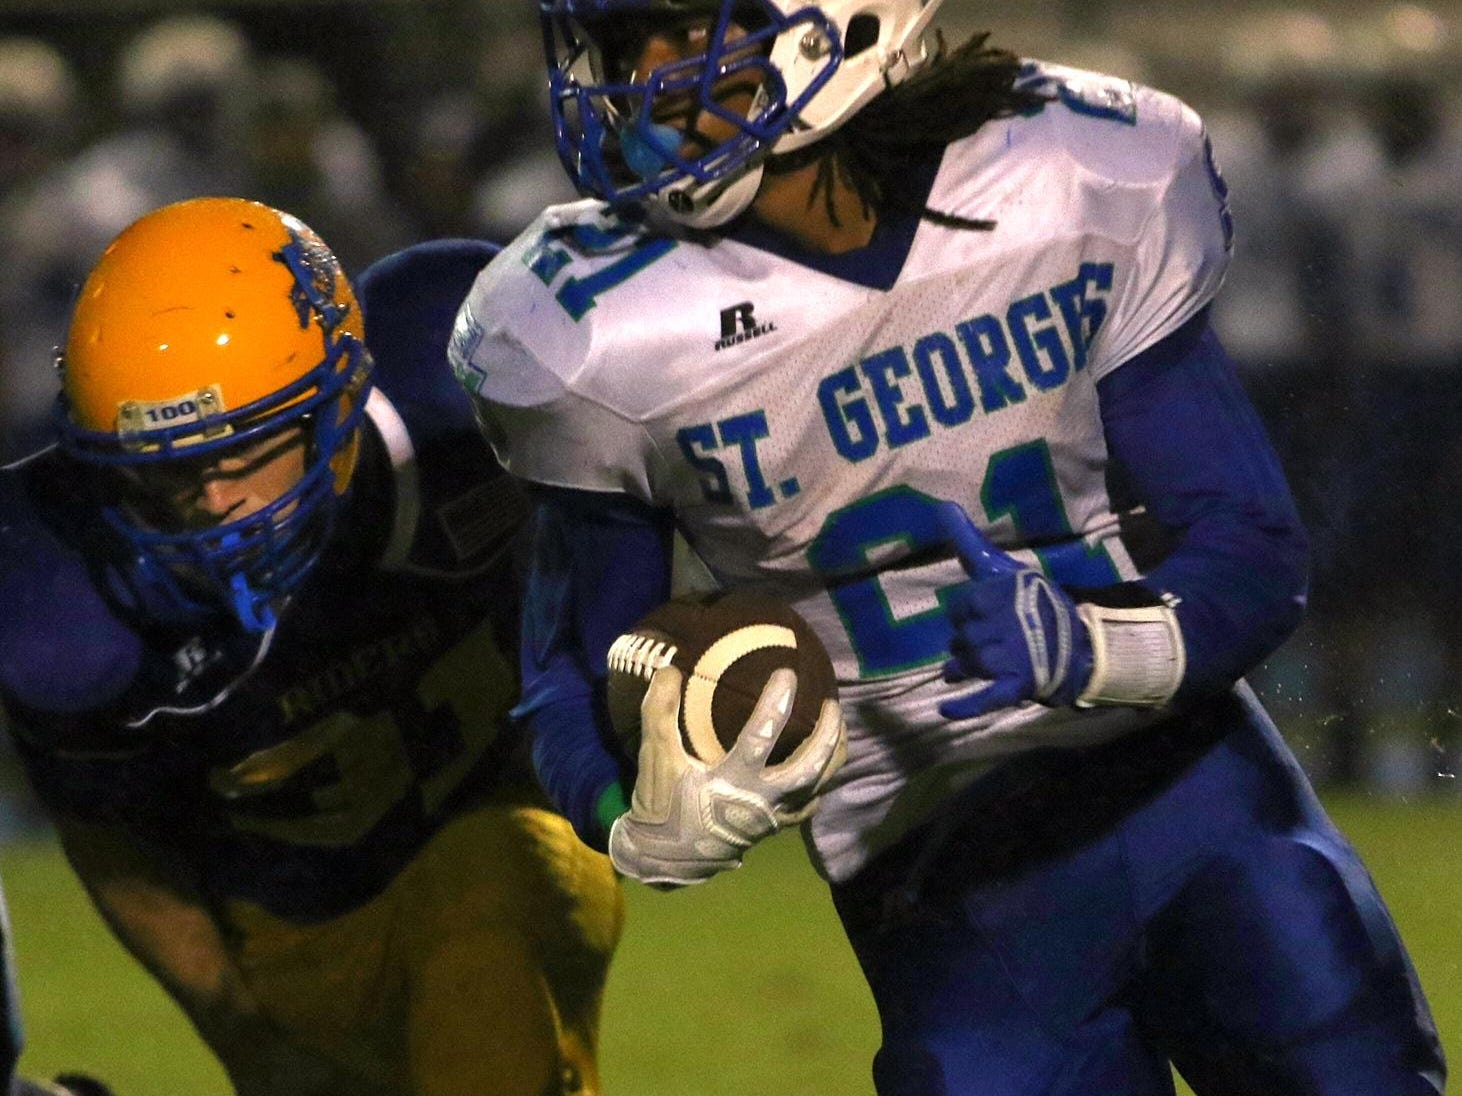 St. Georges running back Gary Brightwell carries the ball during the third quarter.